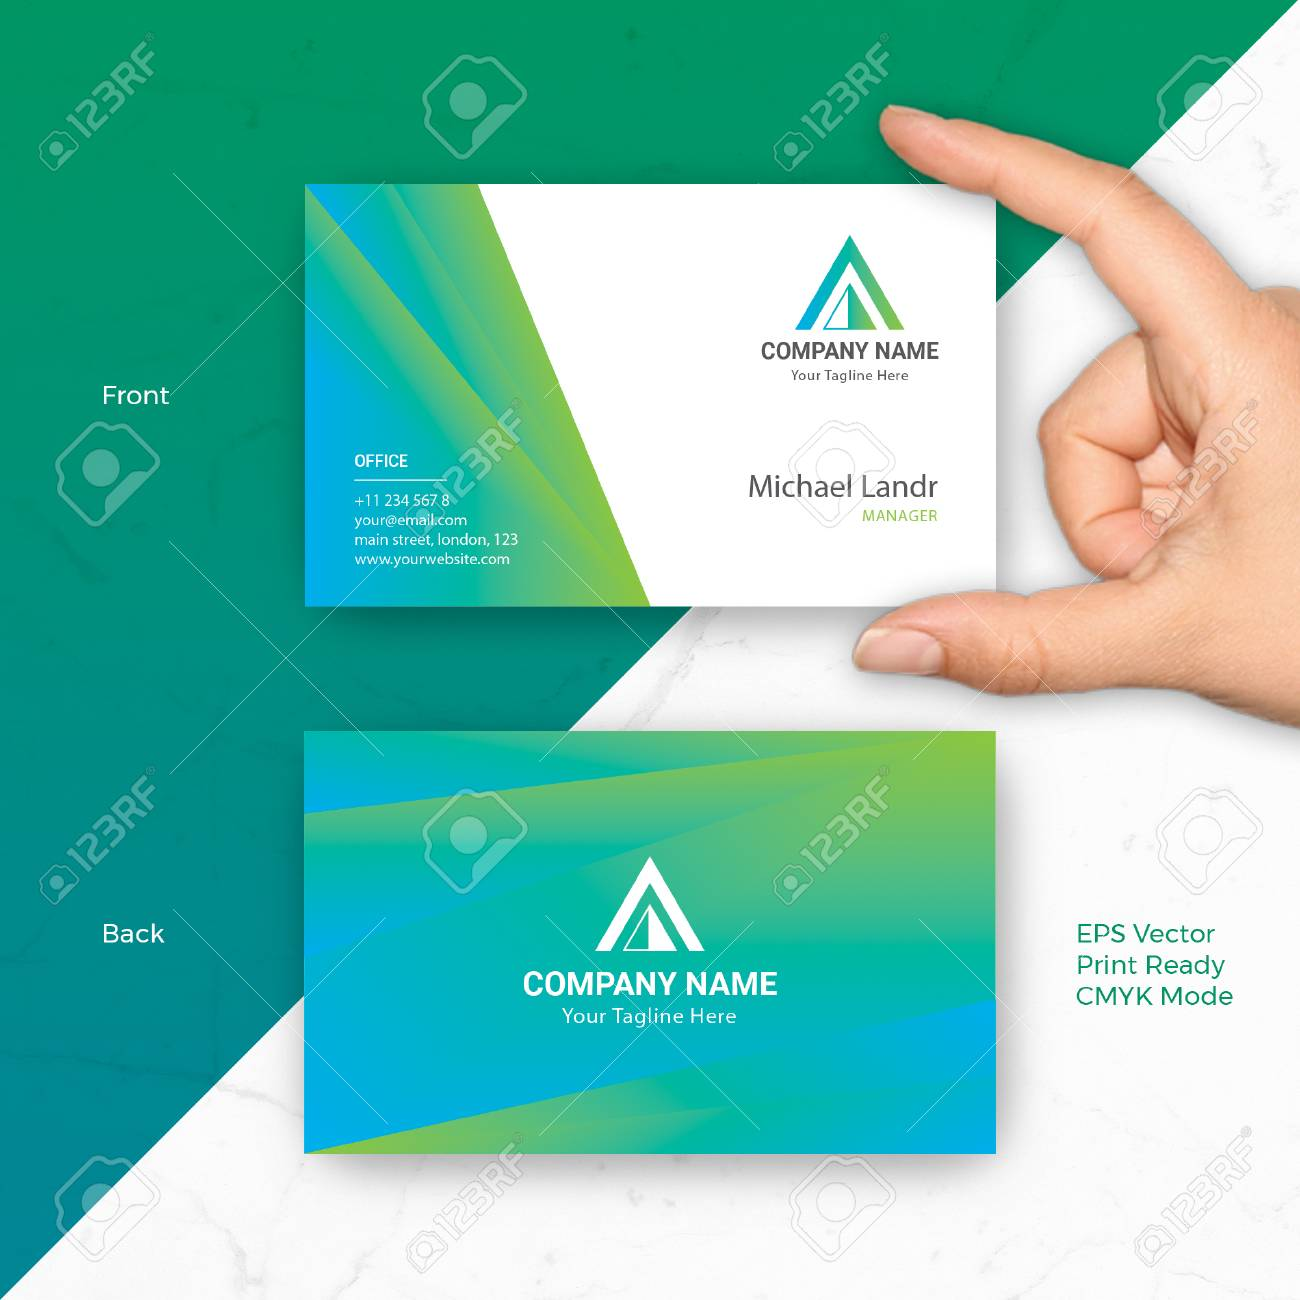 Blue Green Business Card Vector Template Fit For Startup, Modern ...